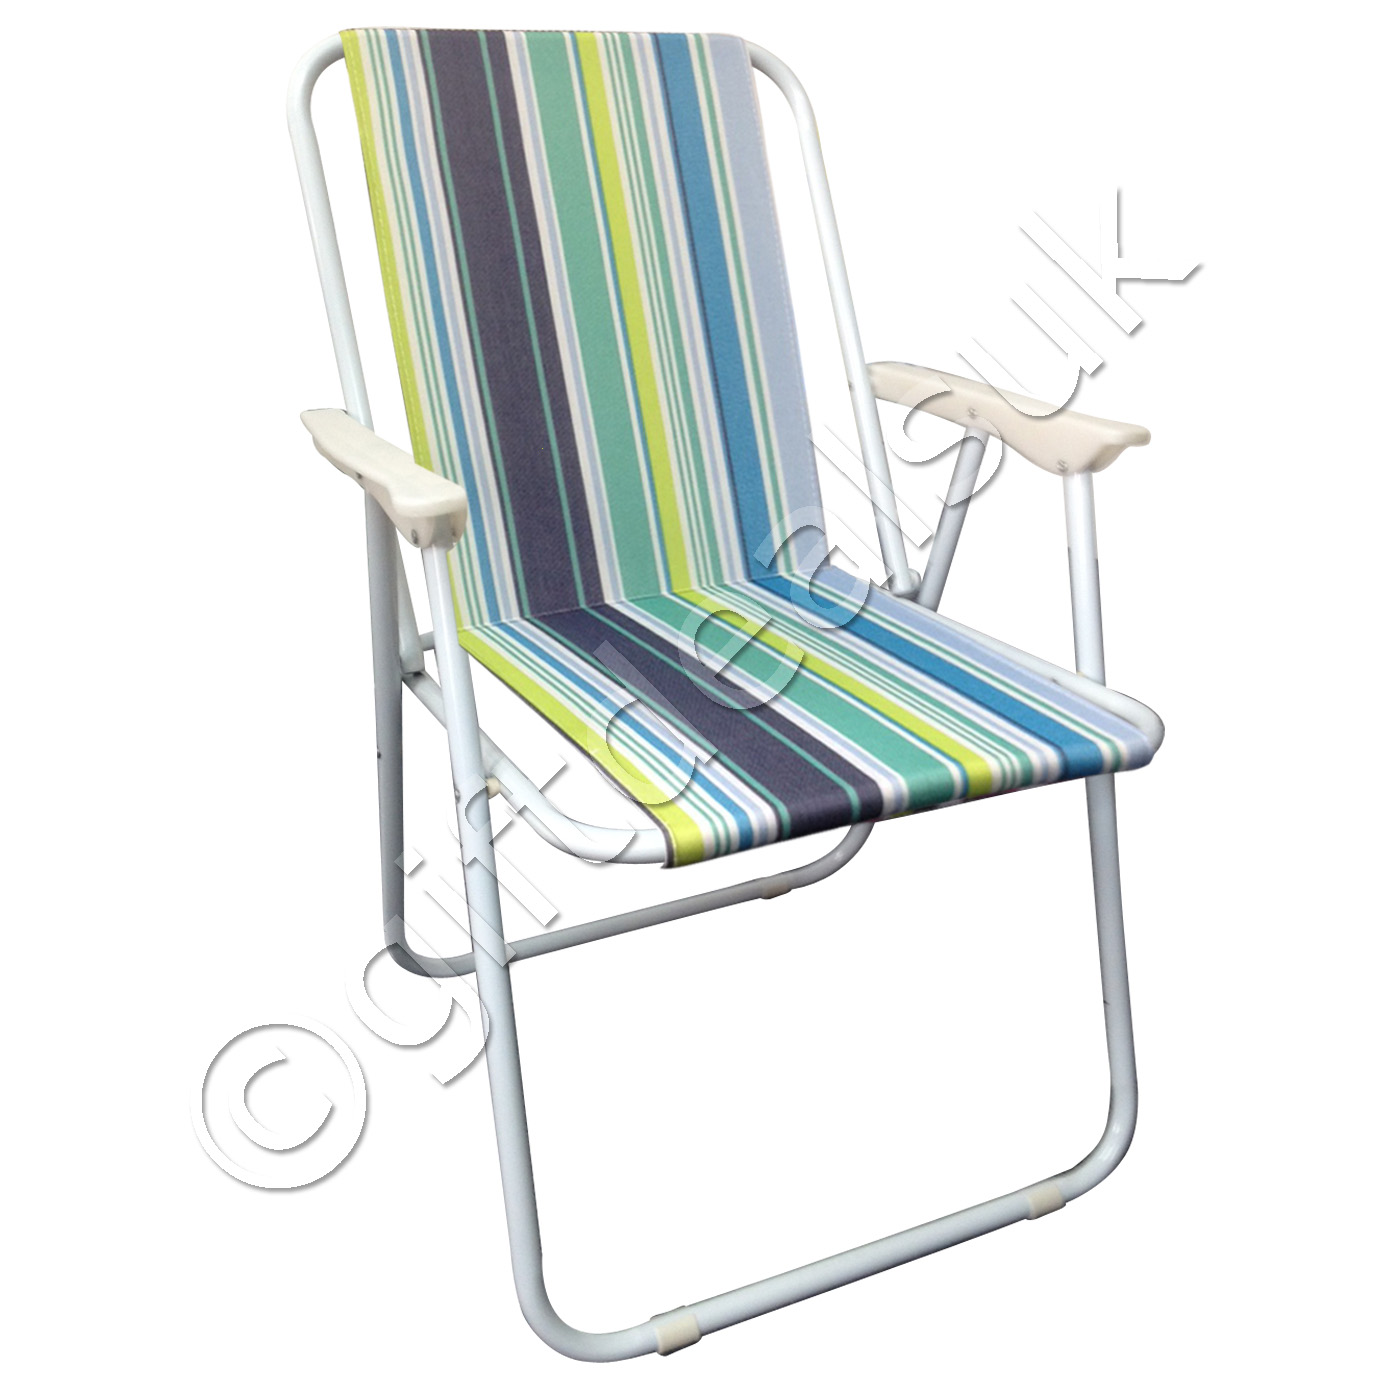 Outdoor Portable Chairs New Design Portable Folding Deck Chair Outdoor Garden